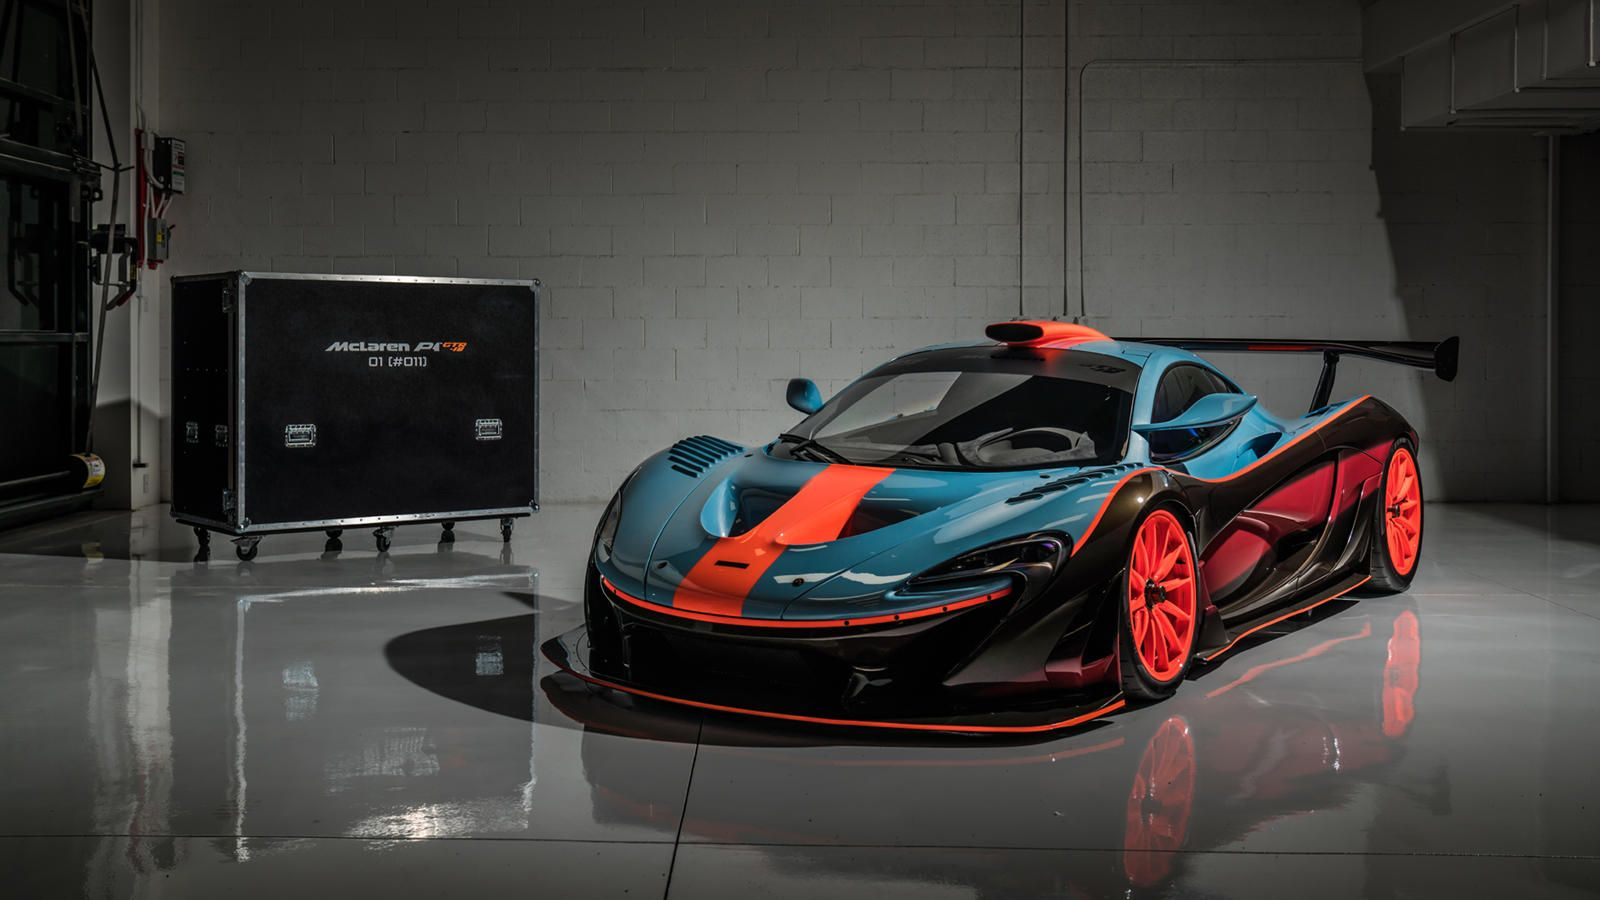 Say Hello To The Stunning And Street Legal Mclaren P1 Gtr 18 Only Six Of These Retro Inspired Beauties Are Being Built Mclaren P1 Mclaren Gtr